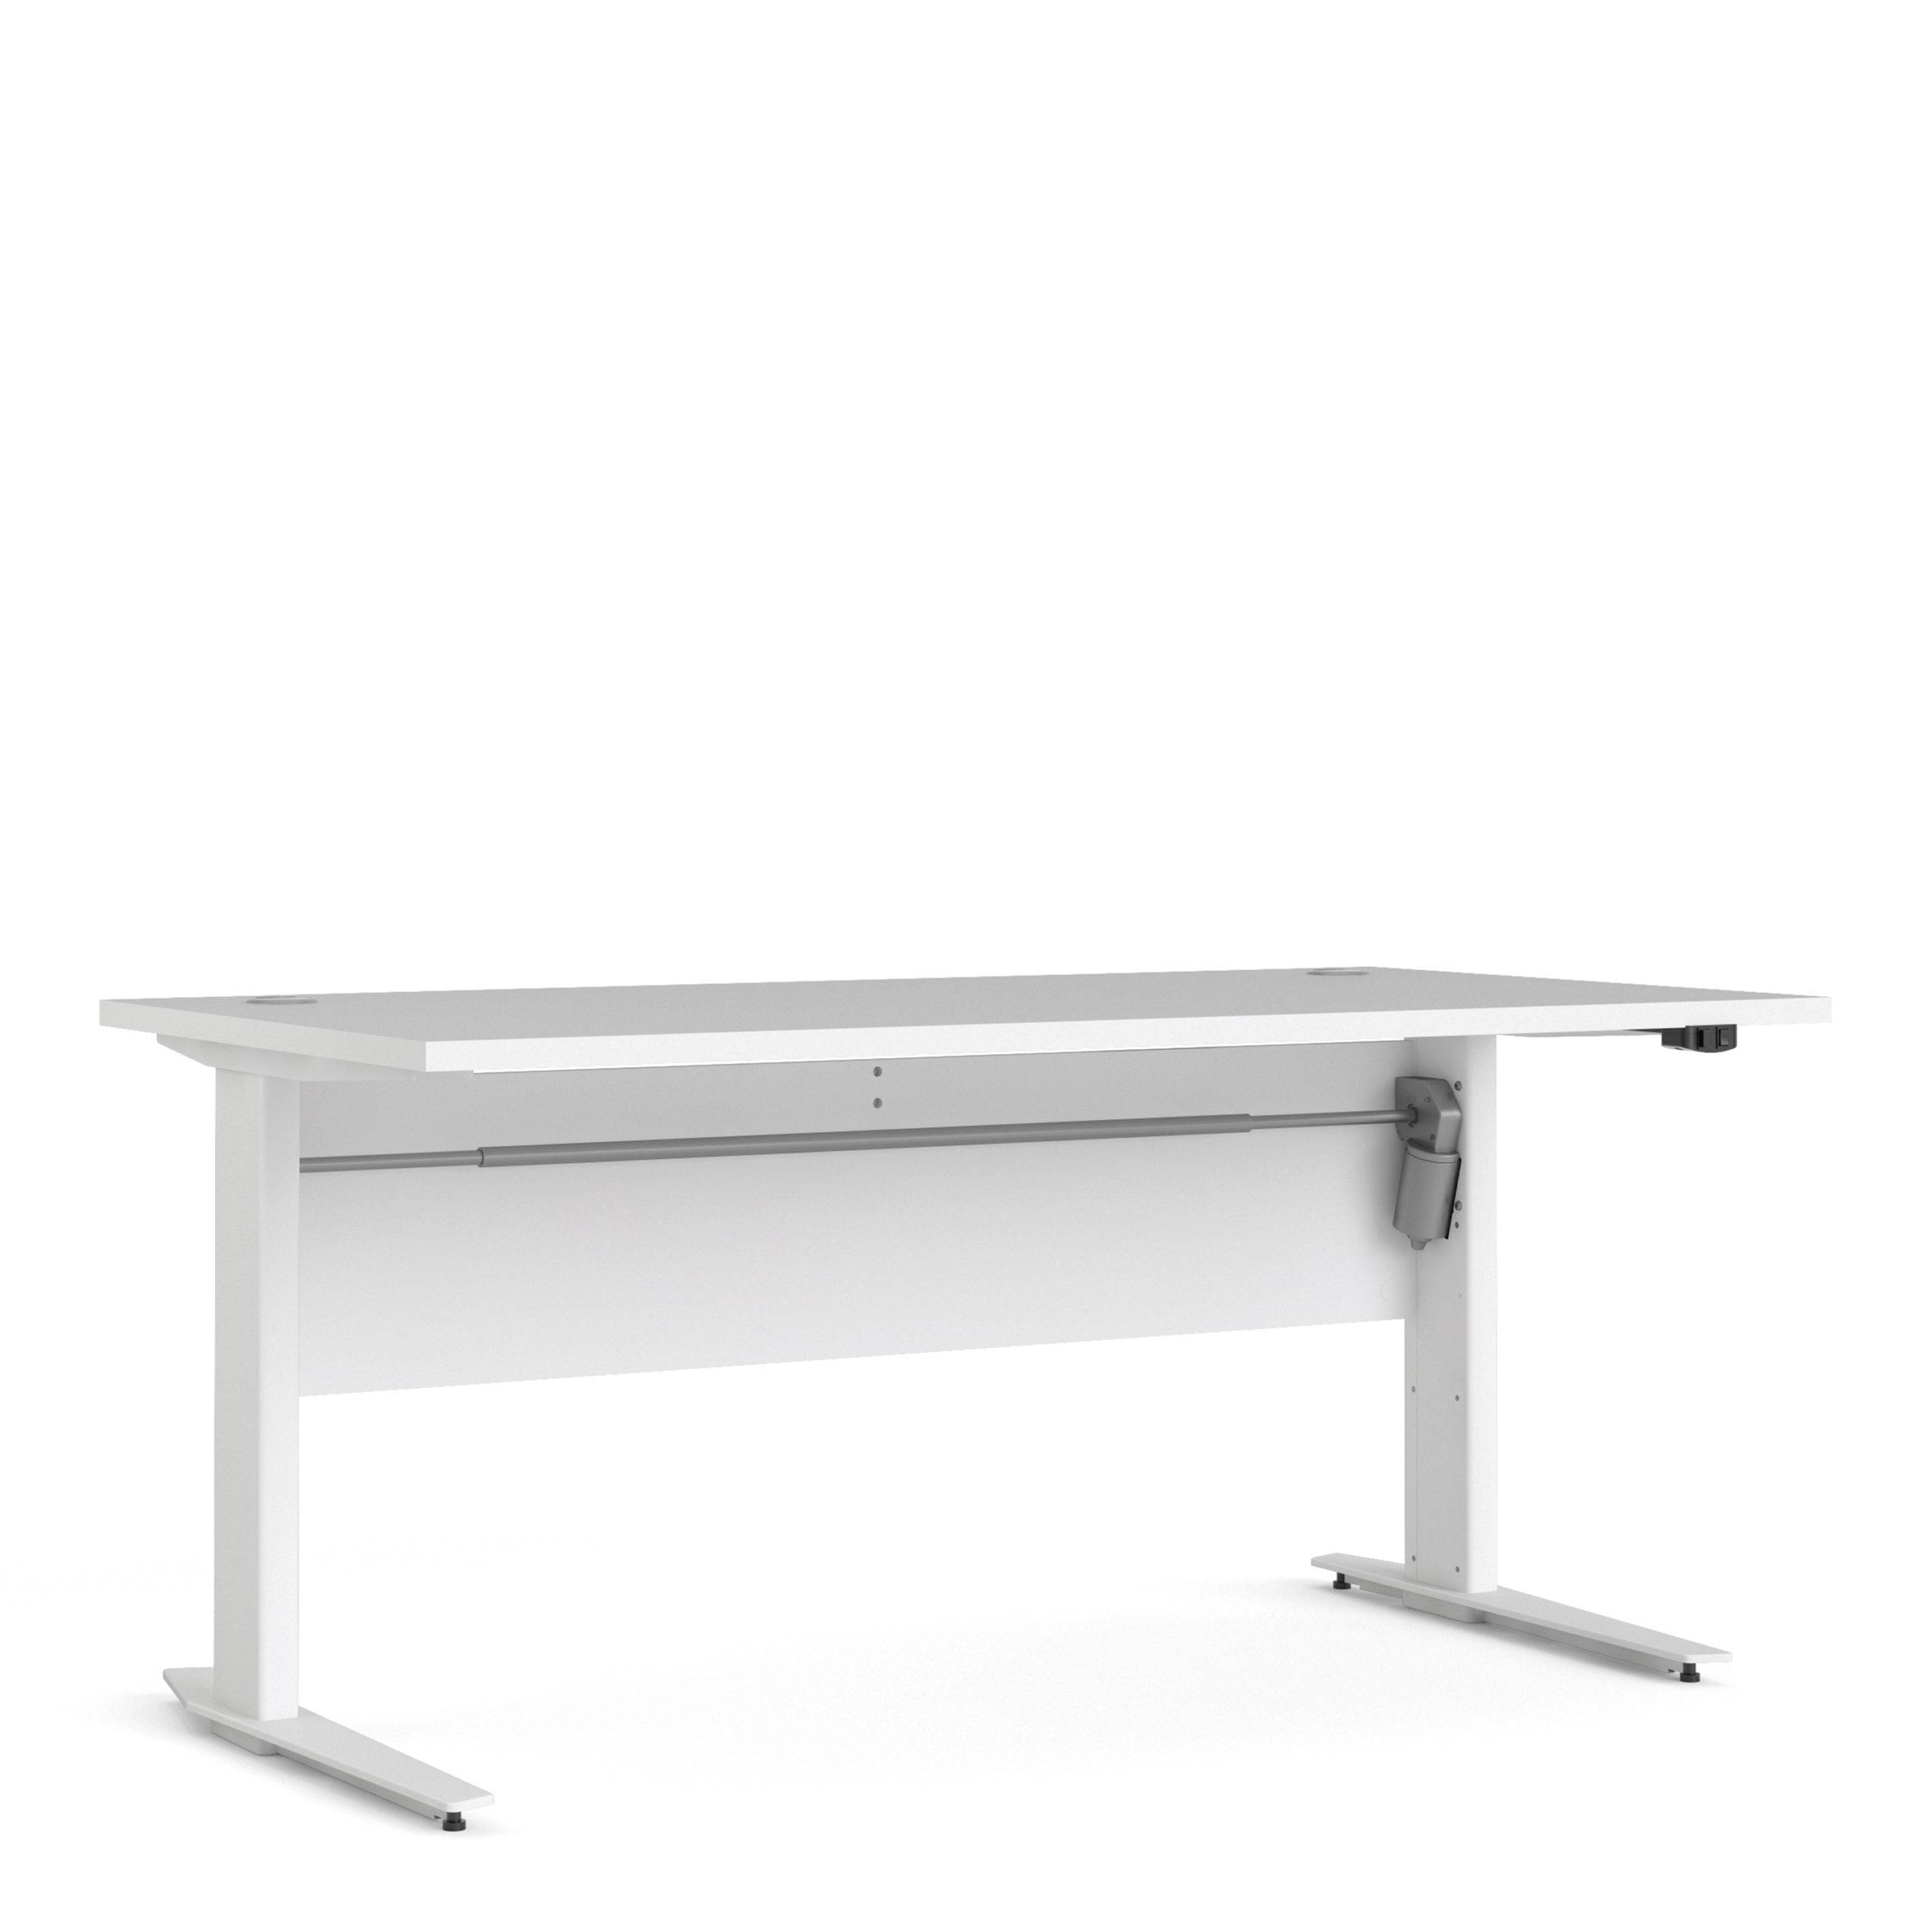 Kansas Desk 150 cm in White   Height Adjustable Legs   Electric Control   Self Assembly